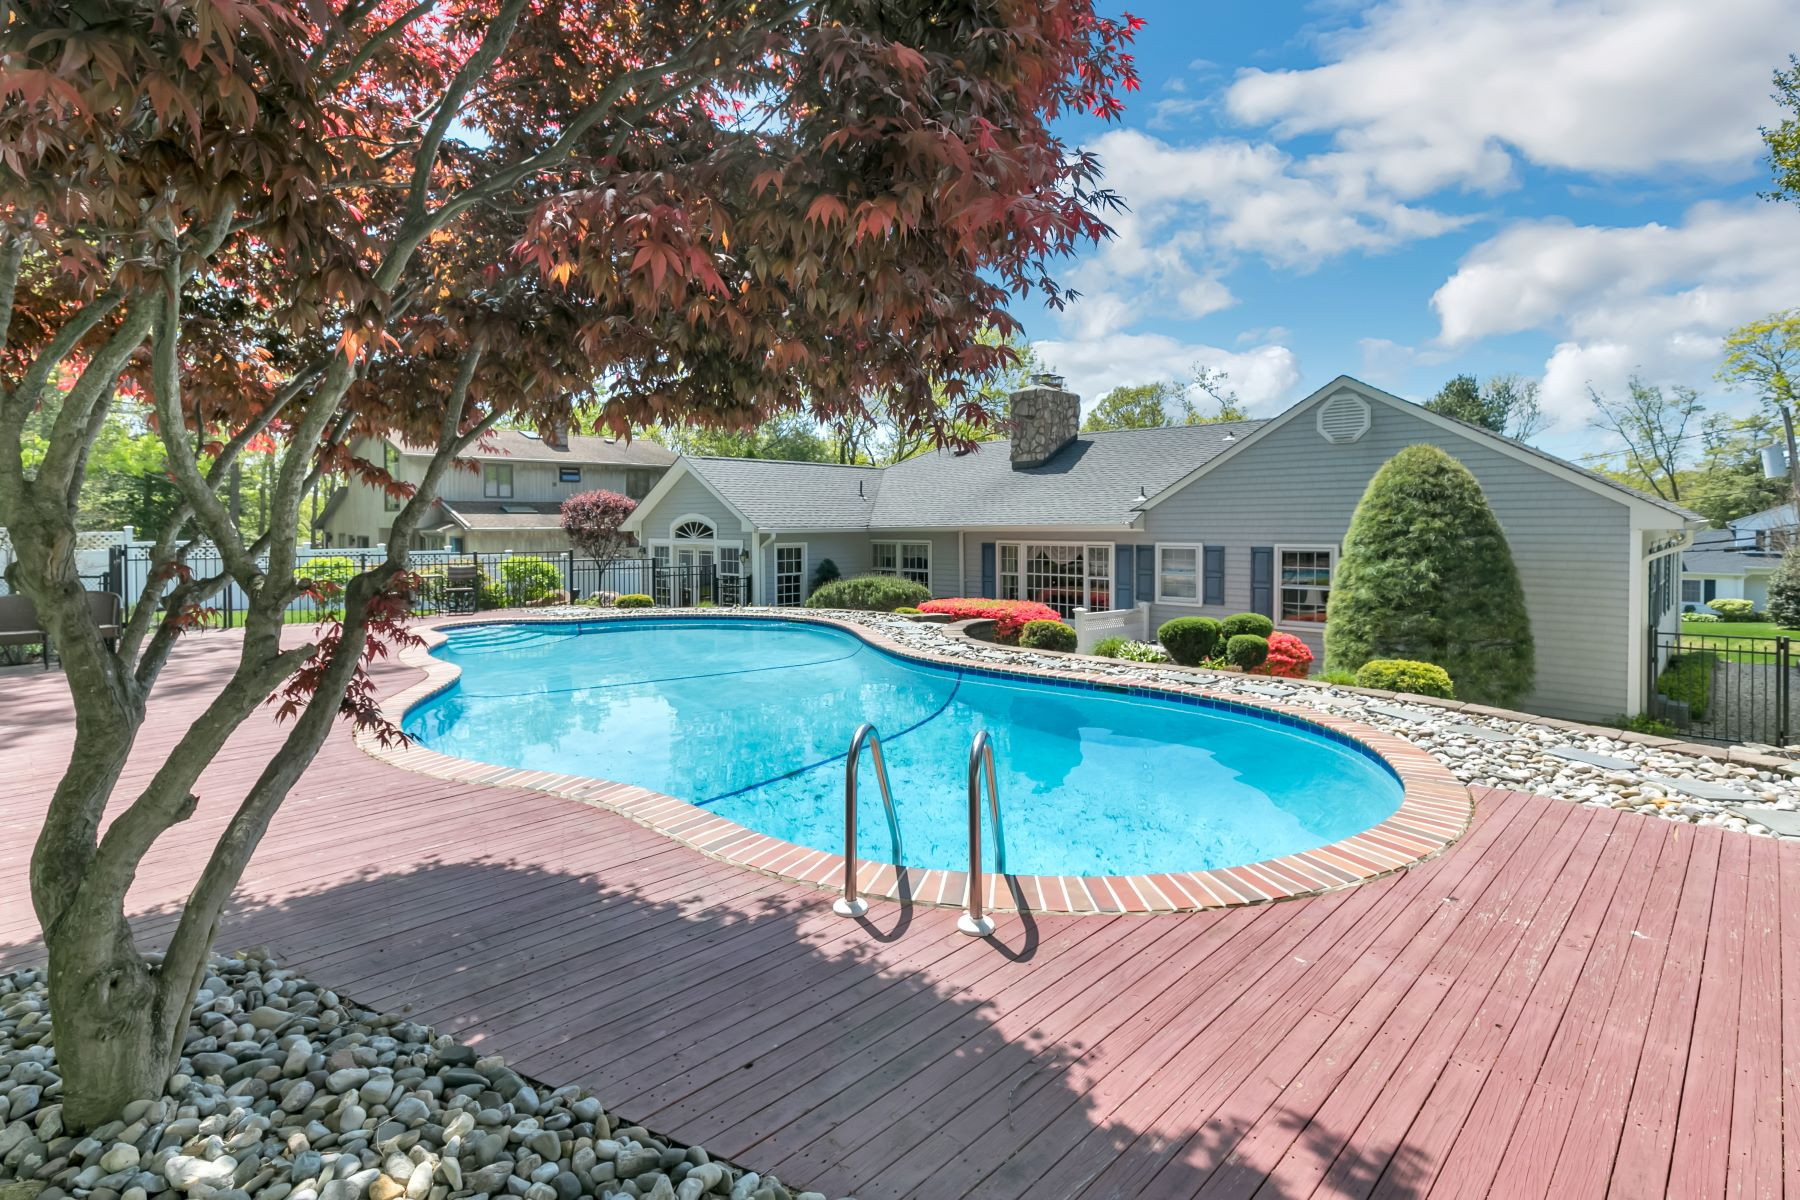 Single Family Homes for Sale at Lovely Ranch Nestled in Rolling Hills of Brielle 642 Valley Rd Brielle, New Jersey 08730 United States